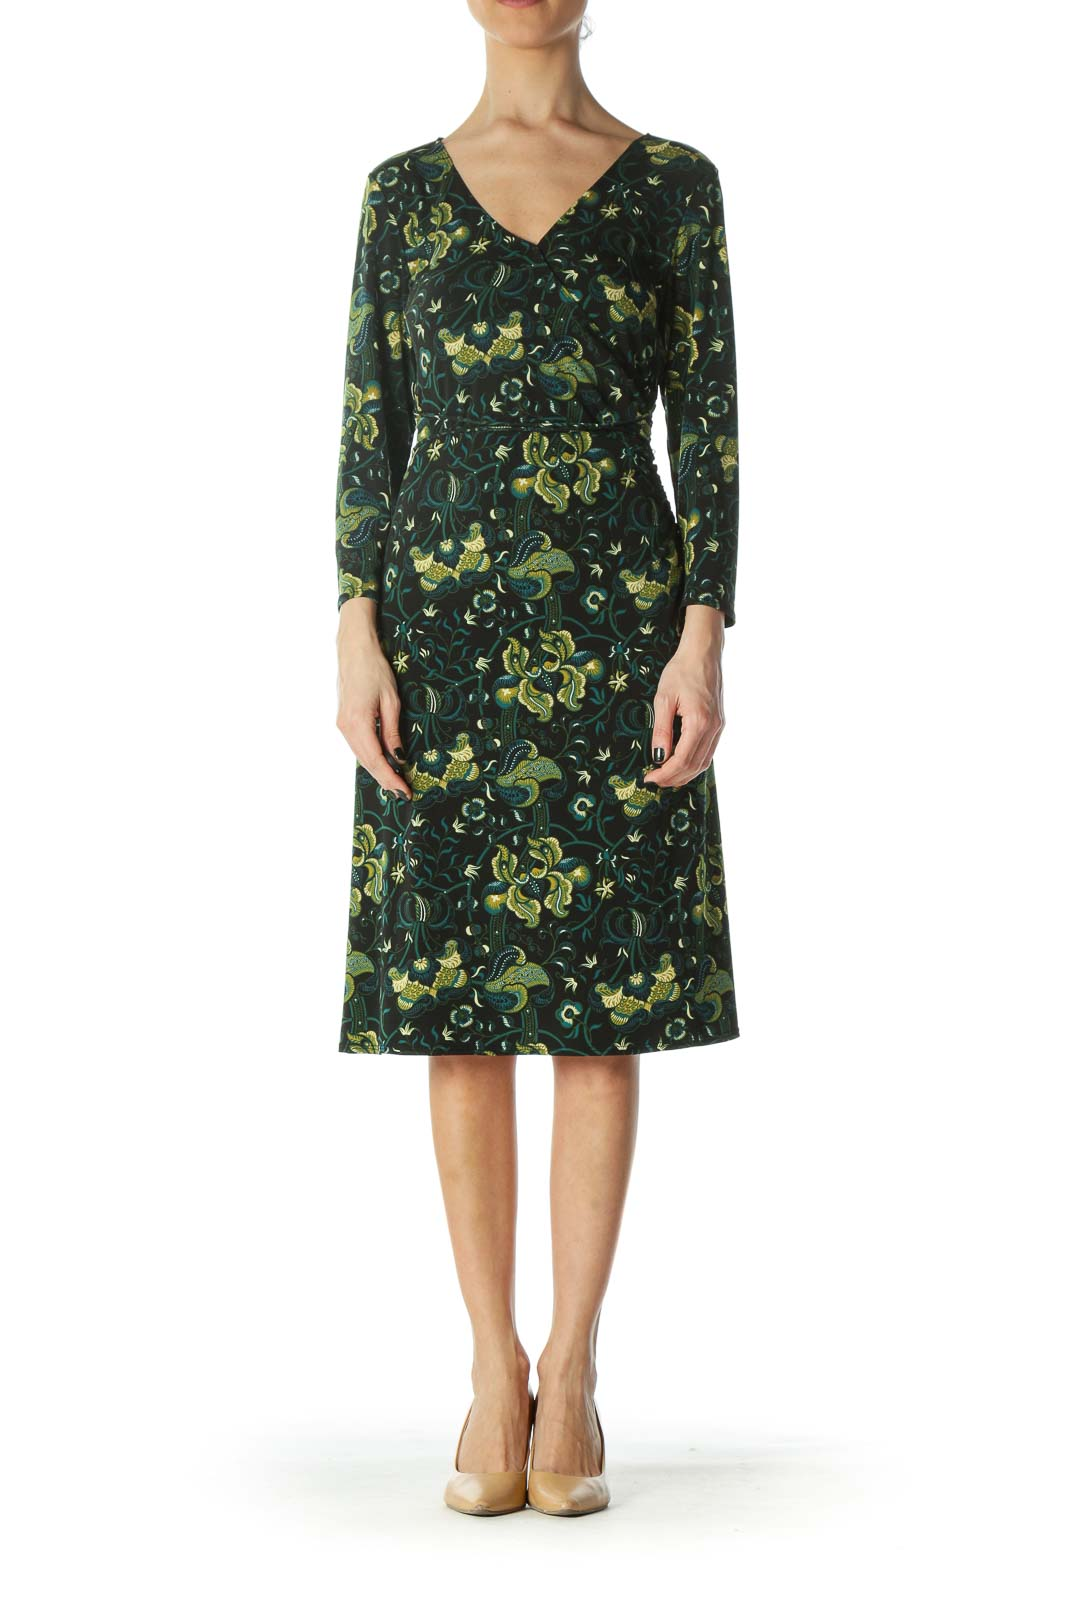 Black Green Yellow Print 3/4 Sleeve Day Dress